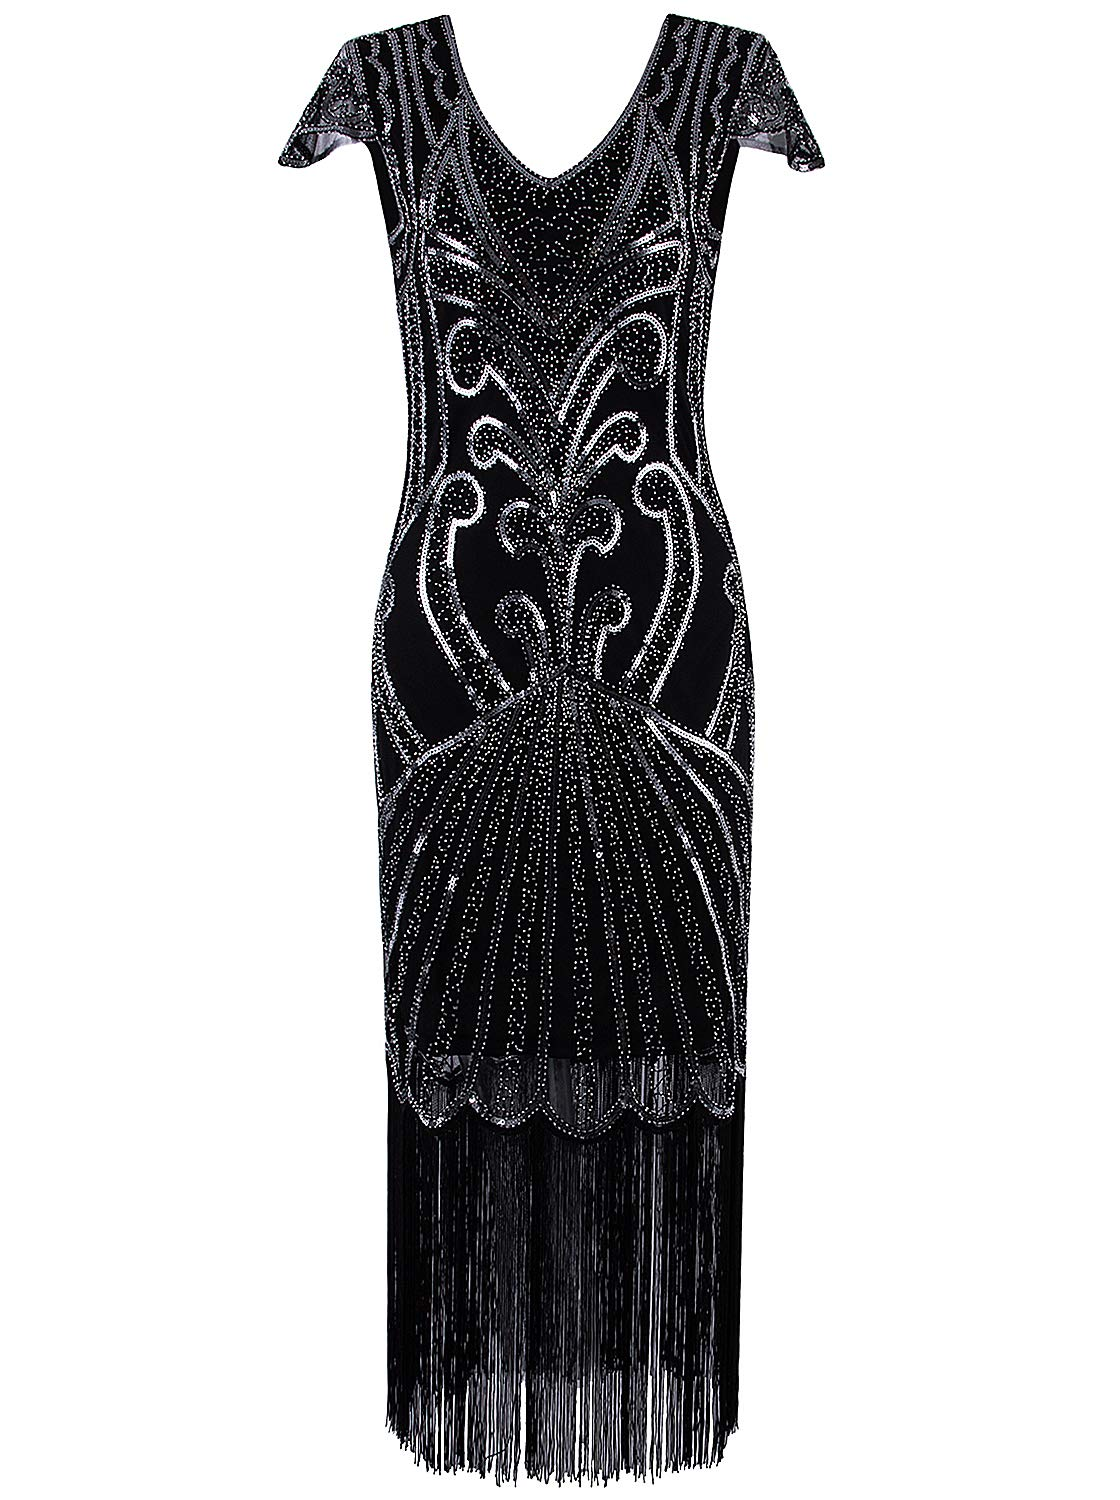 VIJIV Long 1920 Vintage Gatsby Beaded Embellished Fringe Cocktail Flapper Dress Black Silver by VIJIV